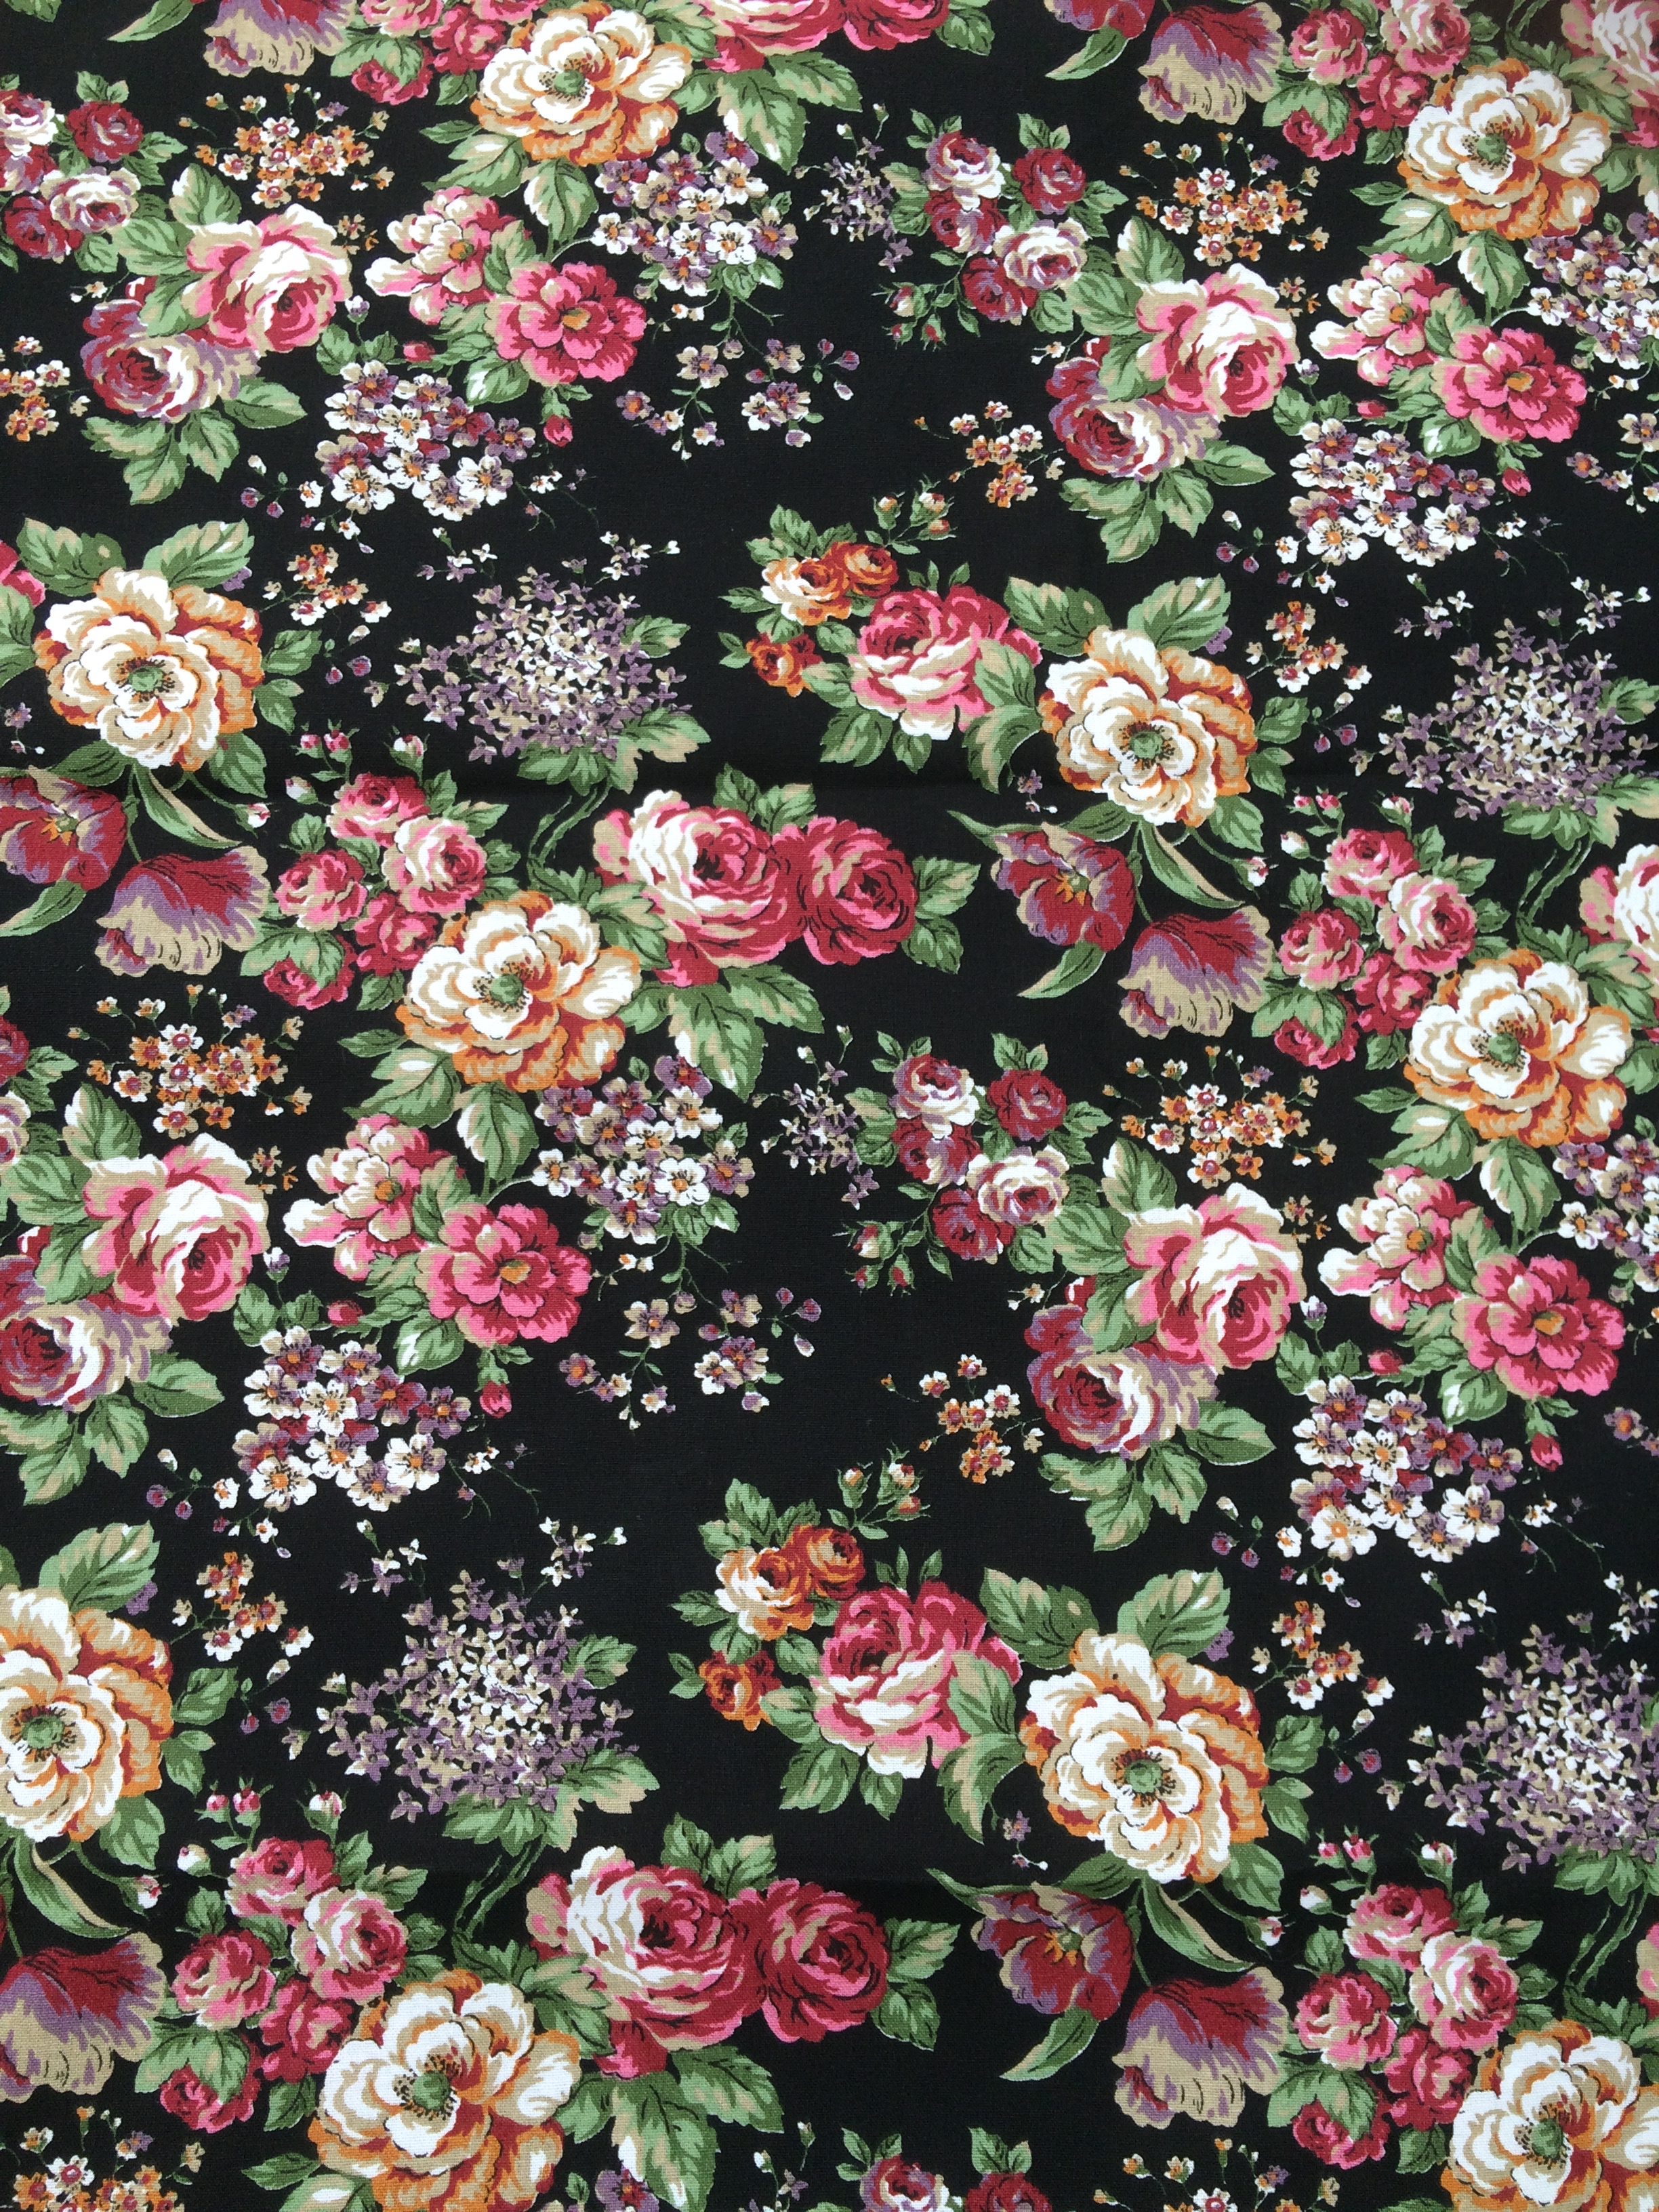 Floral Fabric Designs - Sewing Avenue